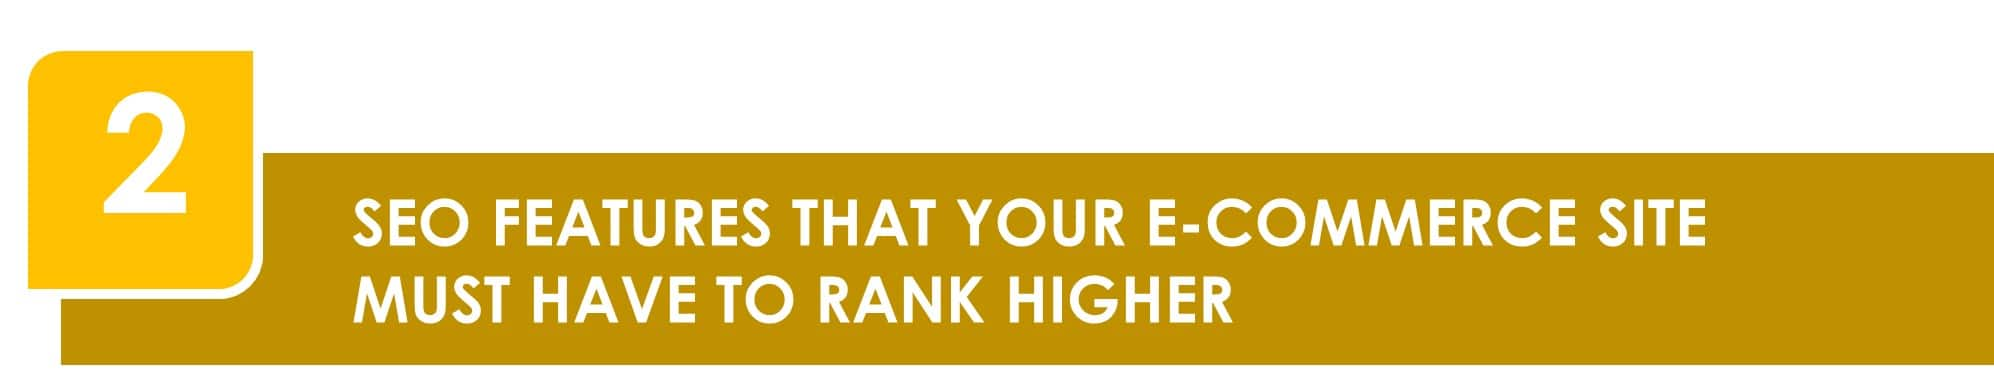 SEO Features That Your e-Commerce Site Must Have to Rank Higher